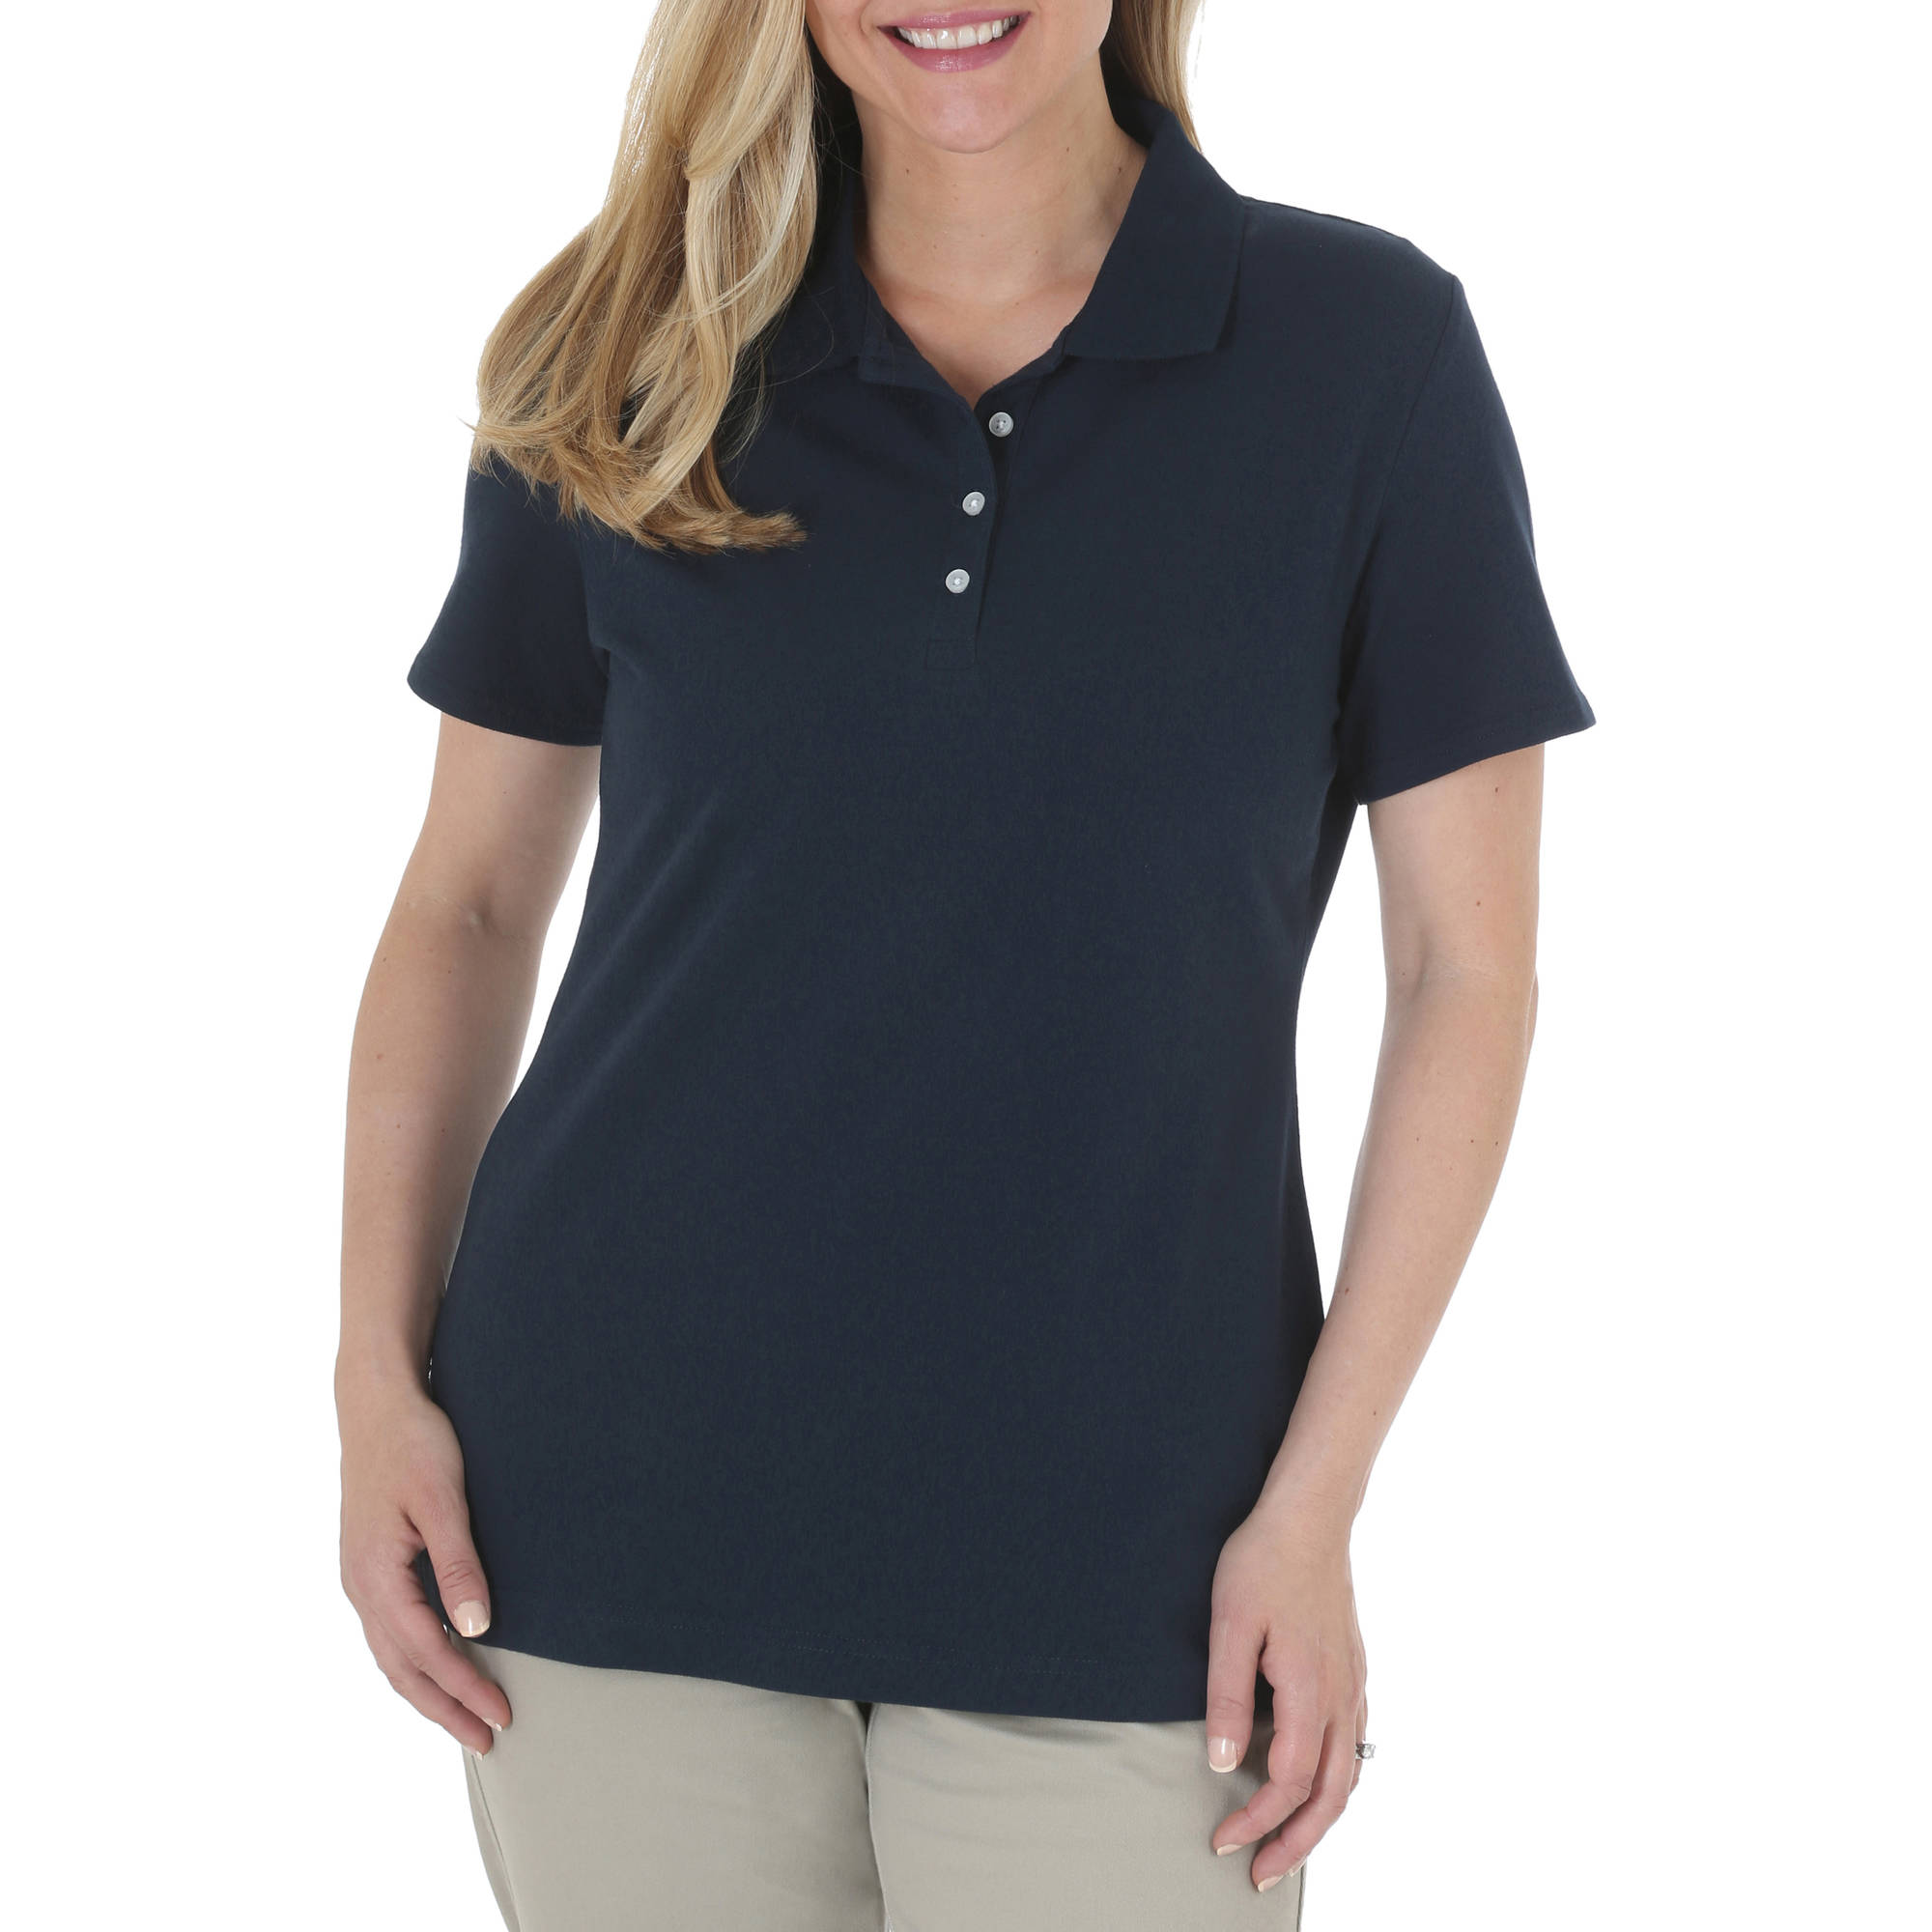 Riders by Lee Women's Knit Polo Shirt - Walmart.com